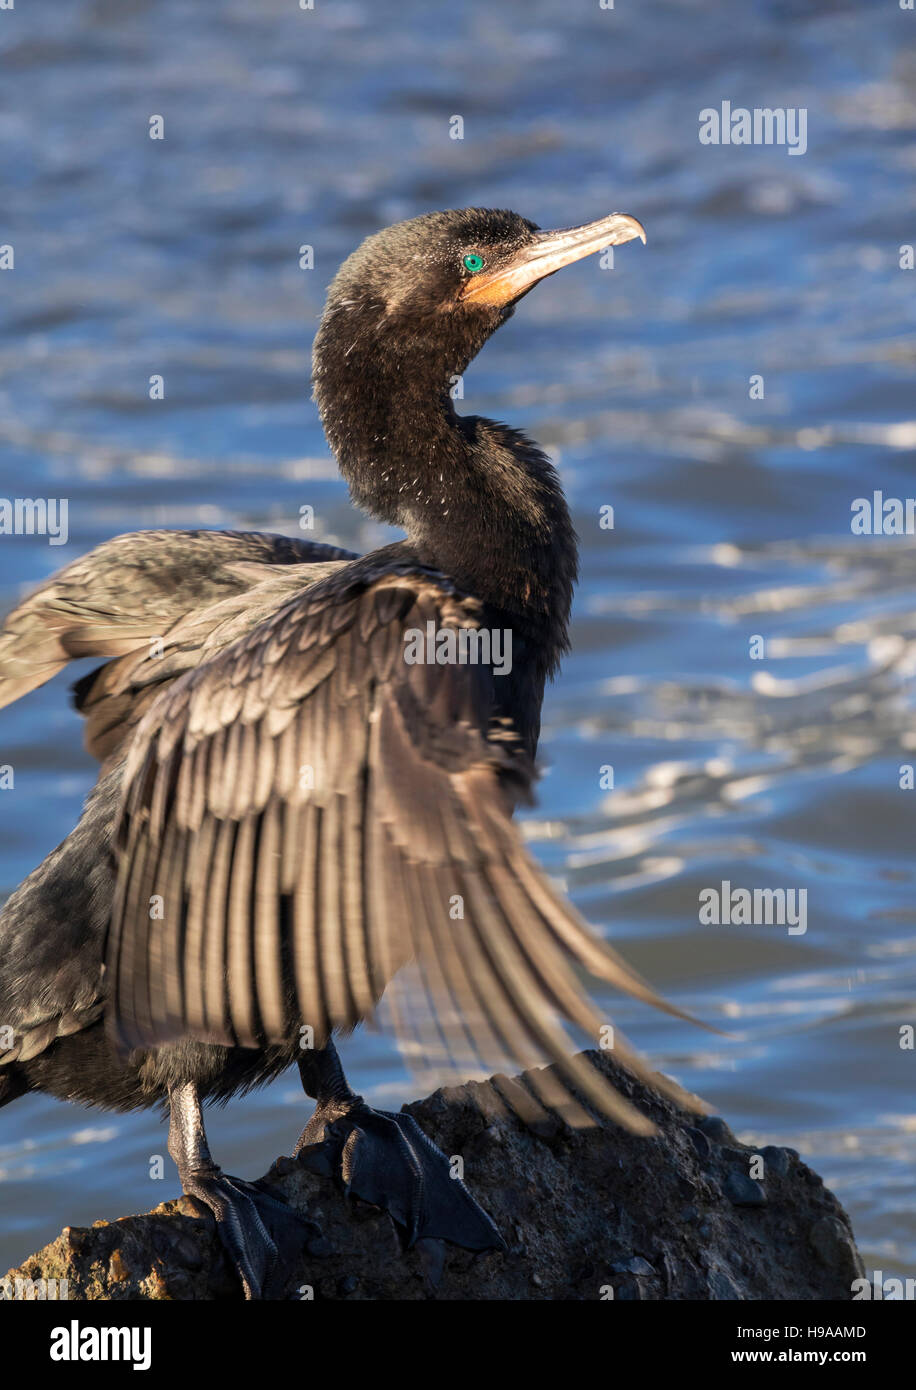 Neotropic or olivaceous cormorant (Phalacrocorax brasilianus) drying feathers after swimming, Galveston, Texas, - Stock Image